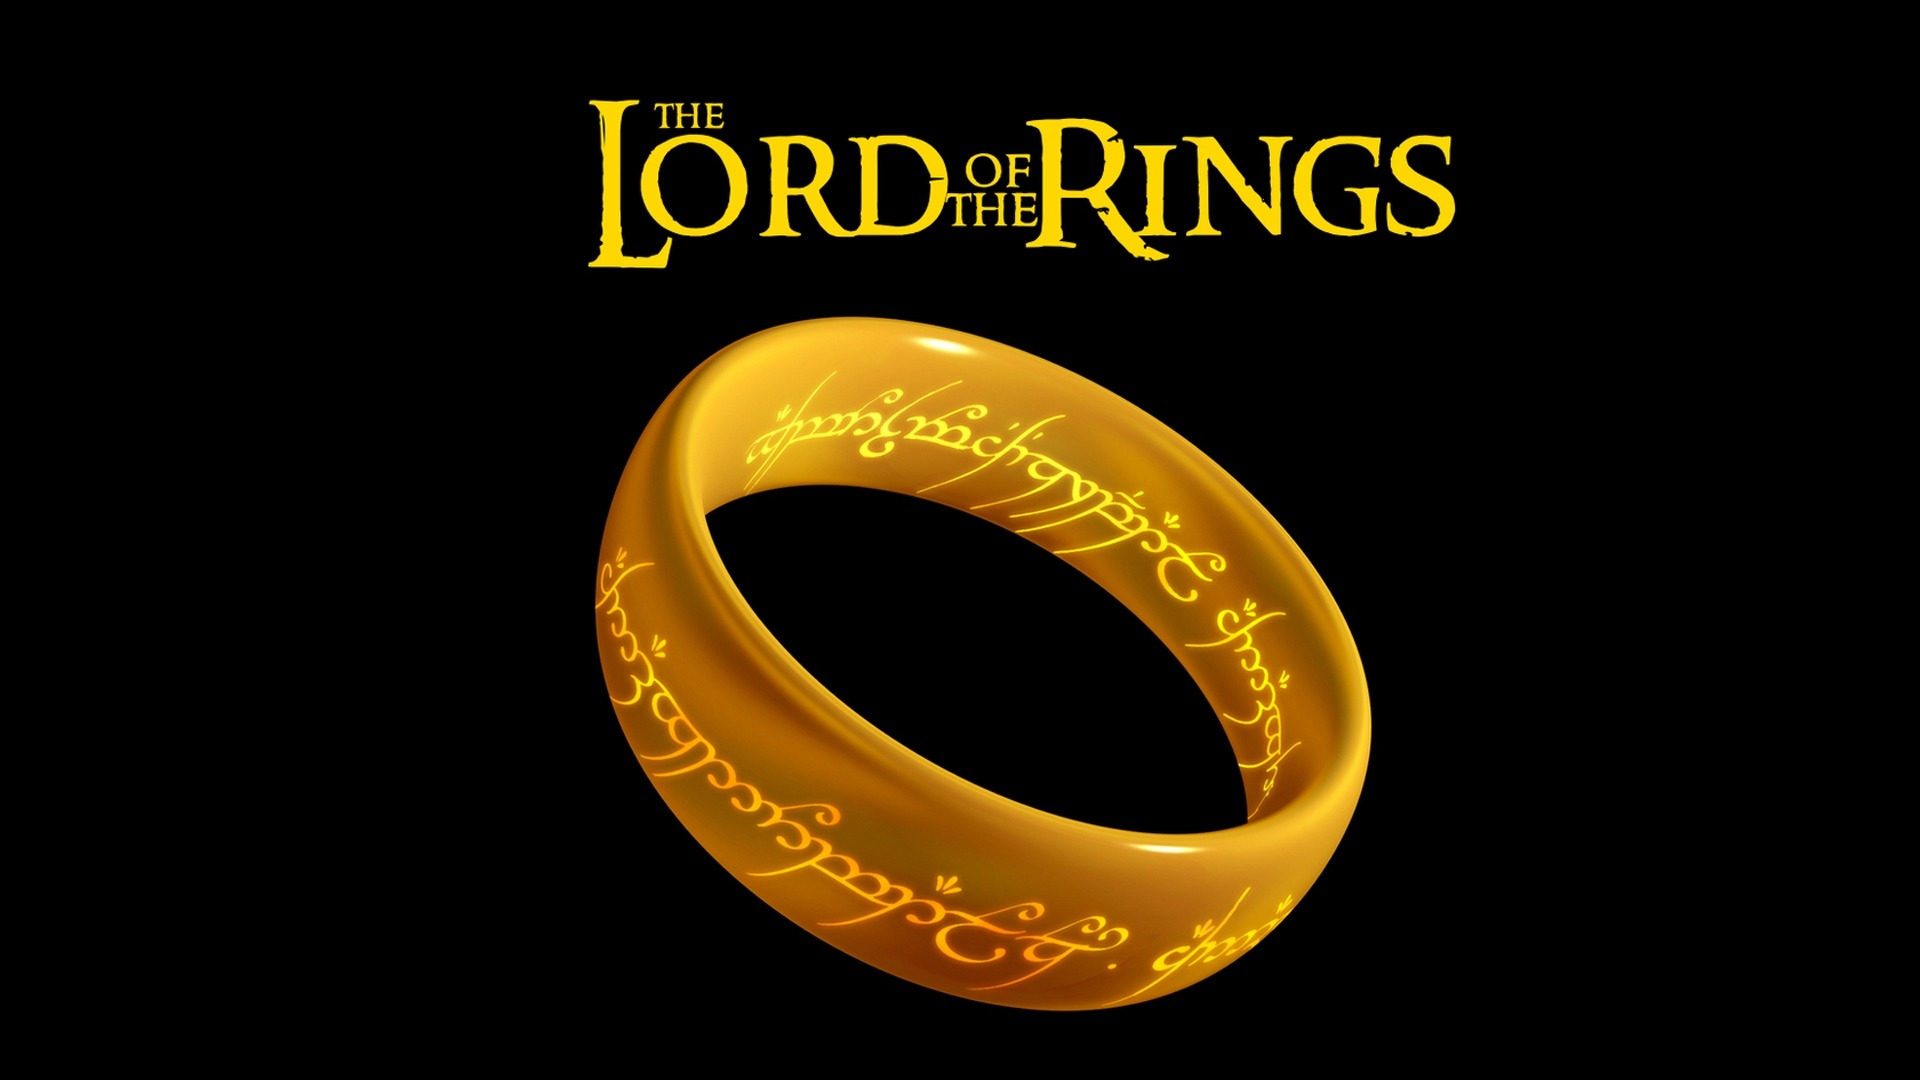 The Lord Of The Rings 1080p Hd Wallpaper Movies Lord Of The